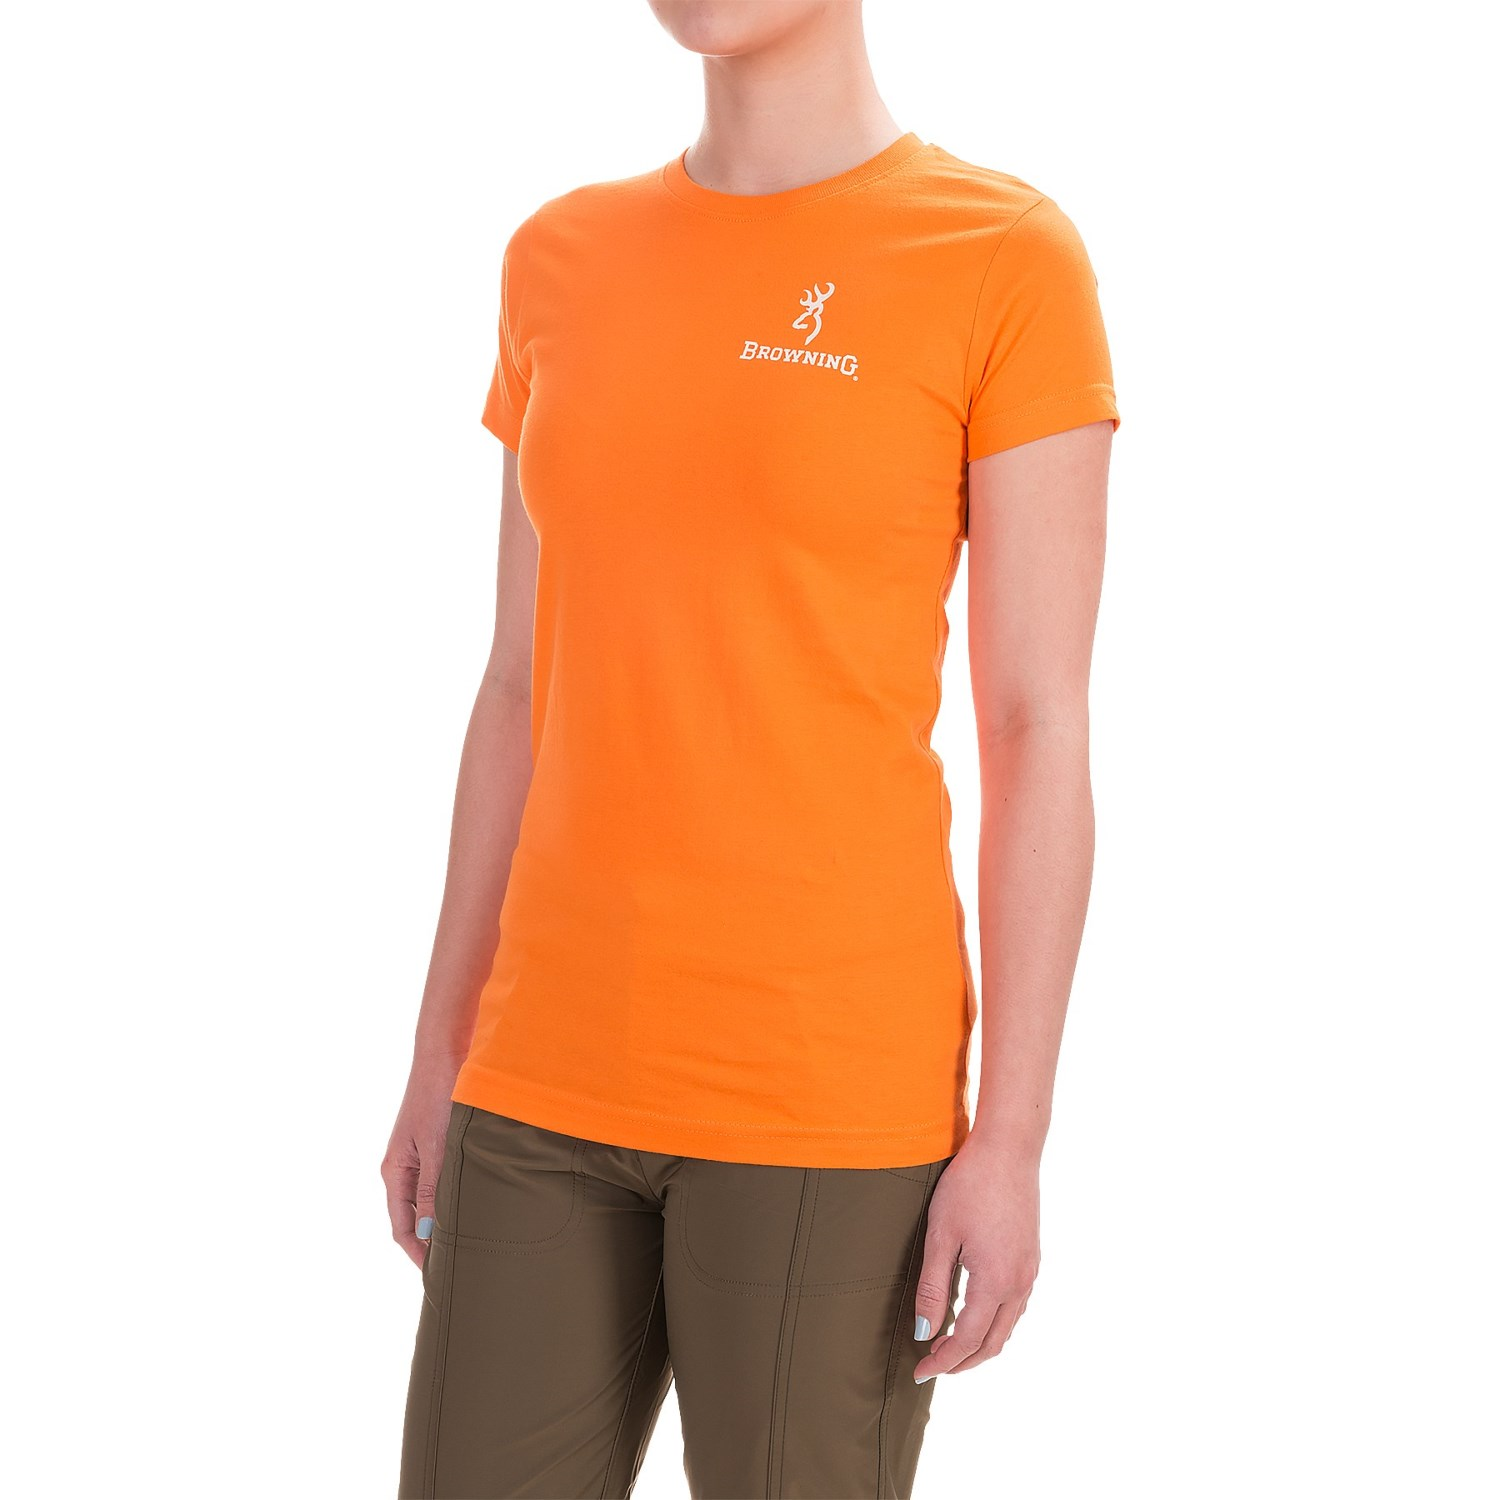 Browning fitted t shirt for women save 82 for What is a fitted t shirt